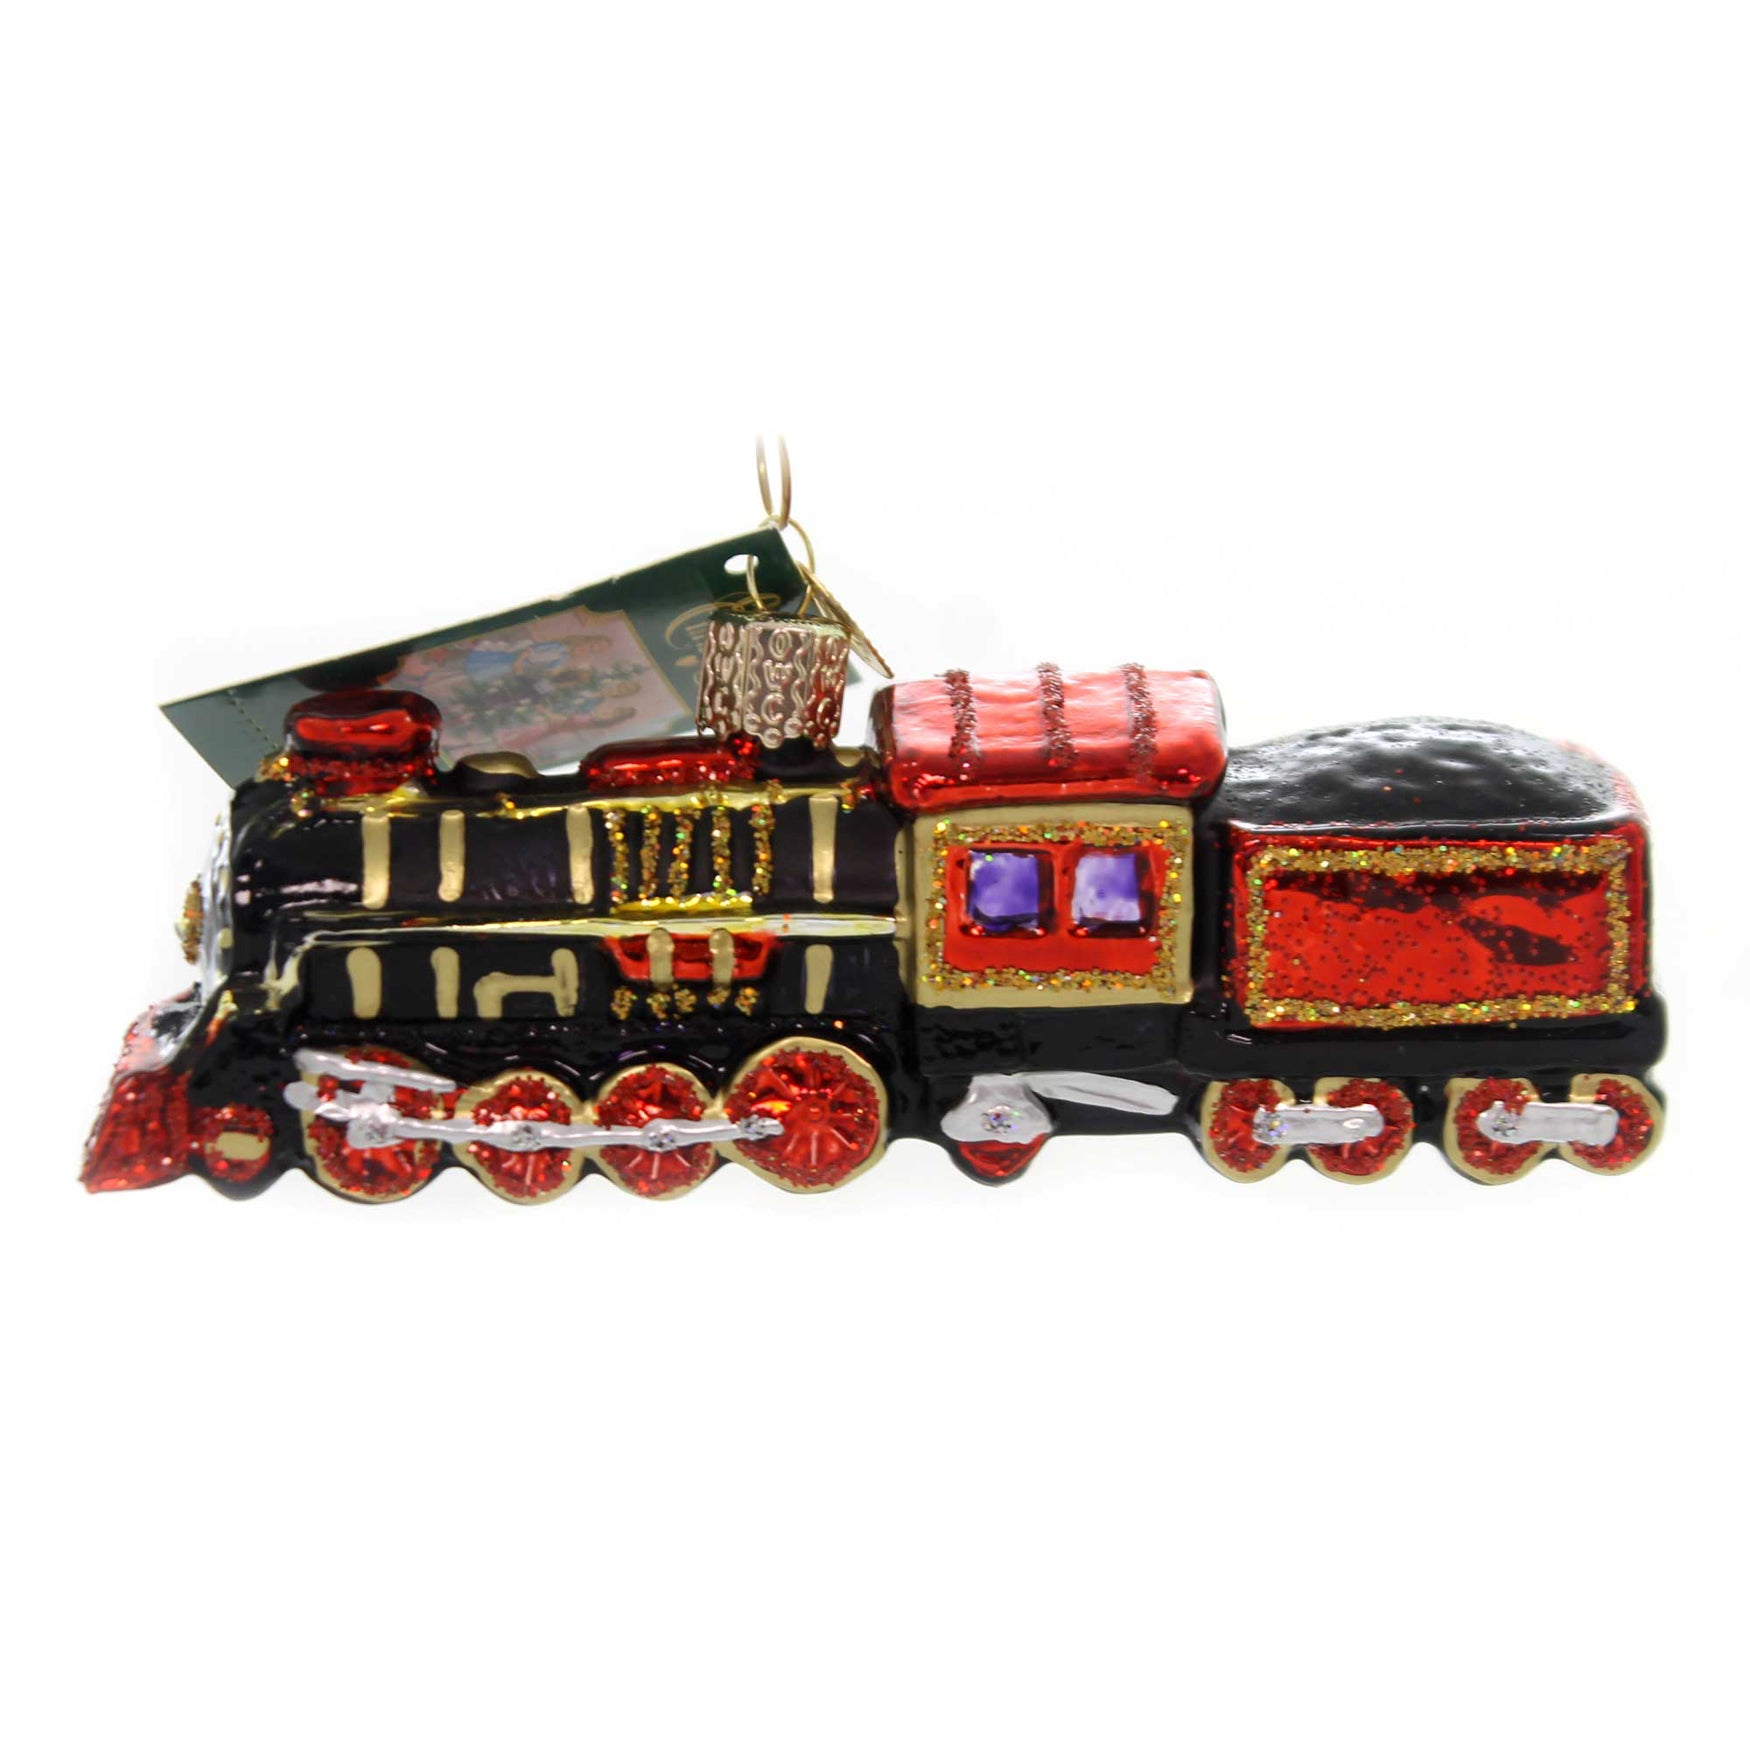 Christmas Train.Old World Christmas Train Glass Steam Locomotive 46080